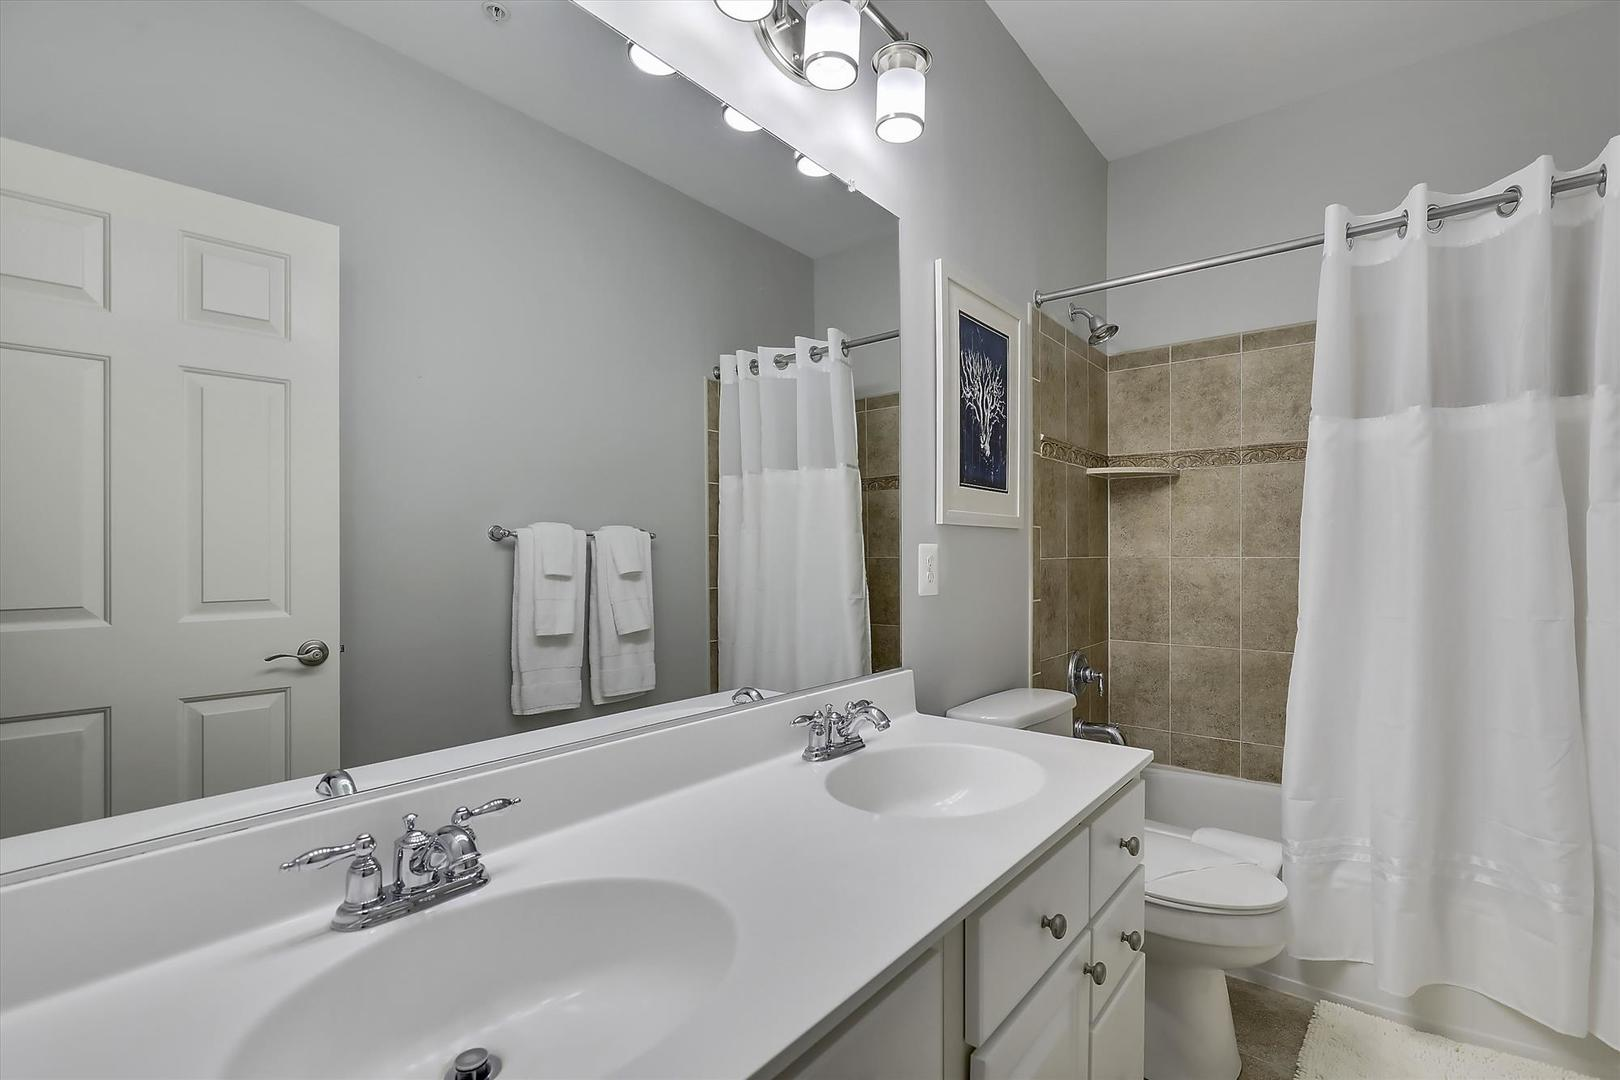 28 Seaside Dr. - Third Floor Hall Bathroom